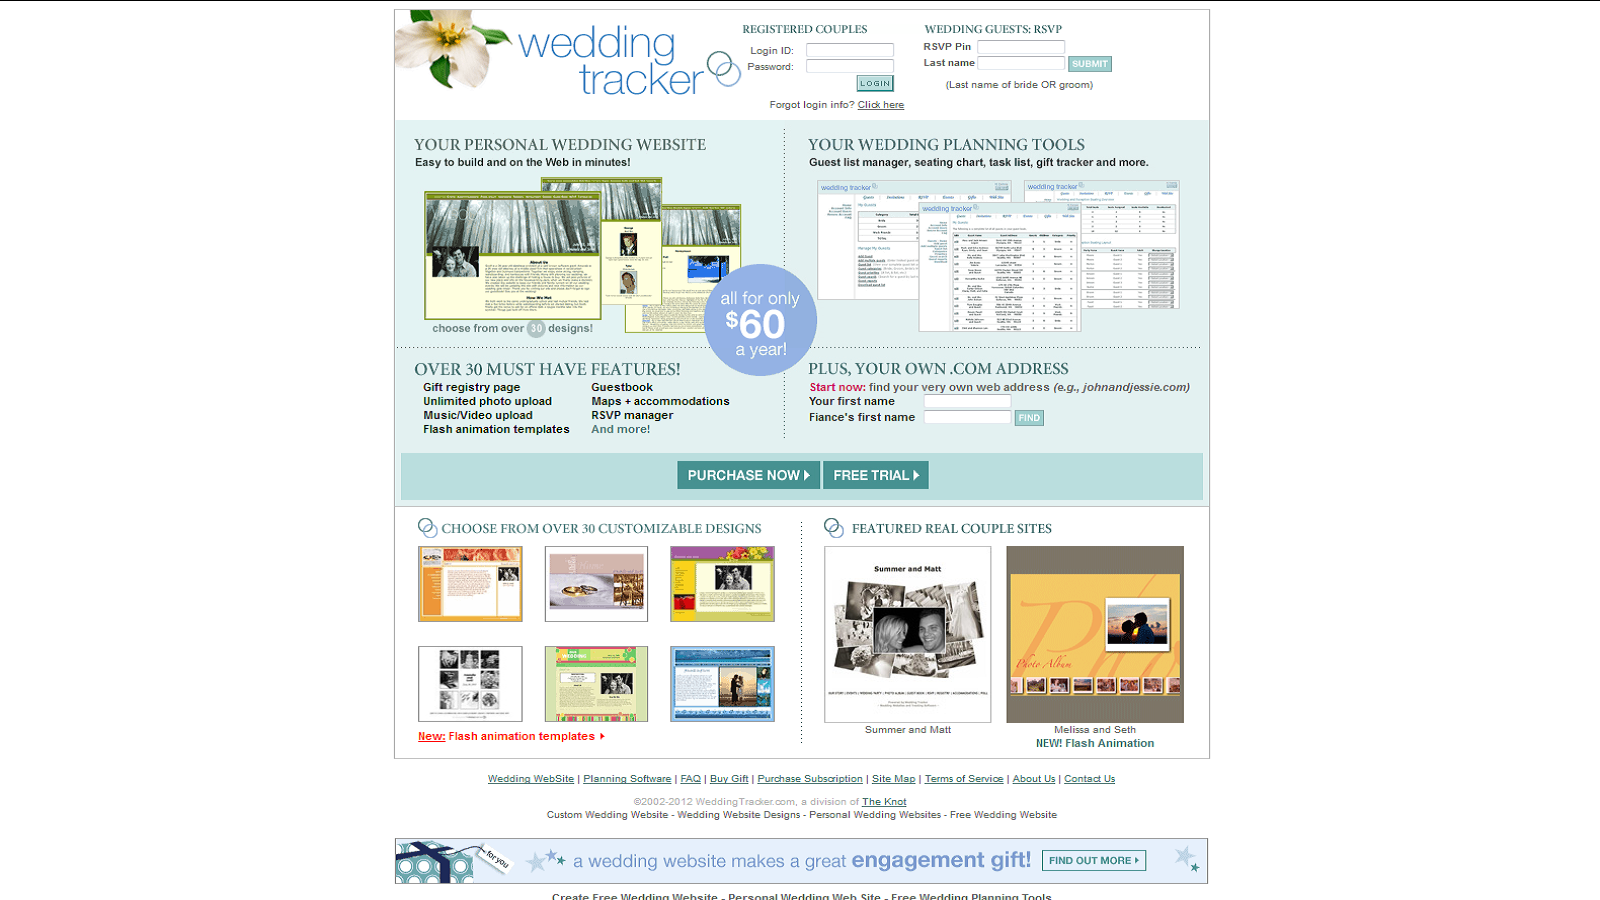 Save On Building a Wedding Website